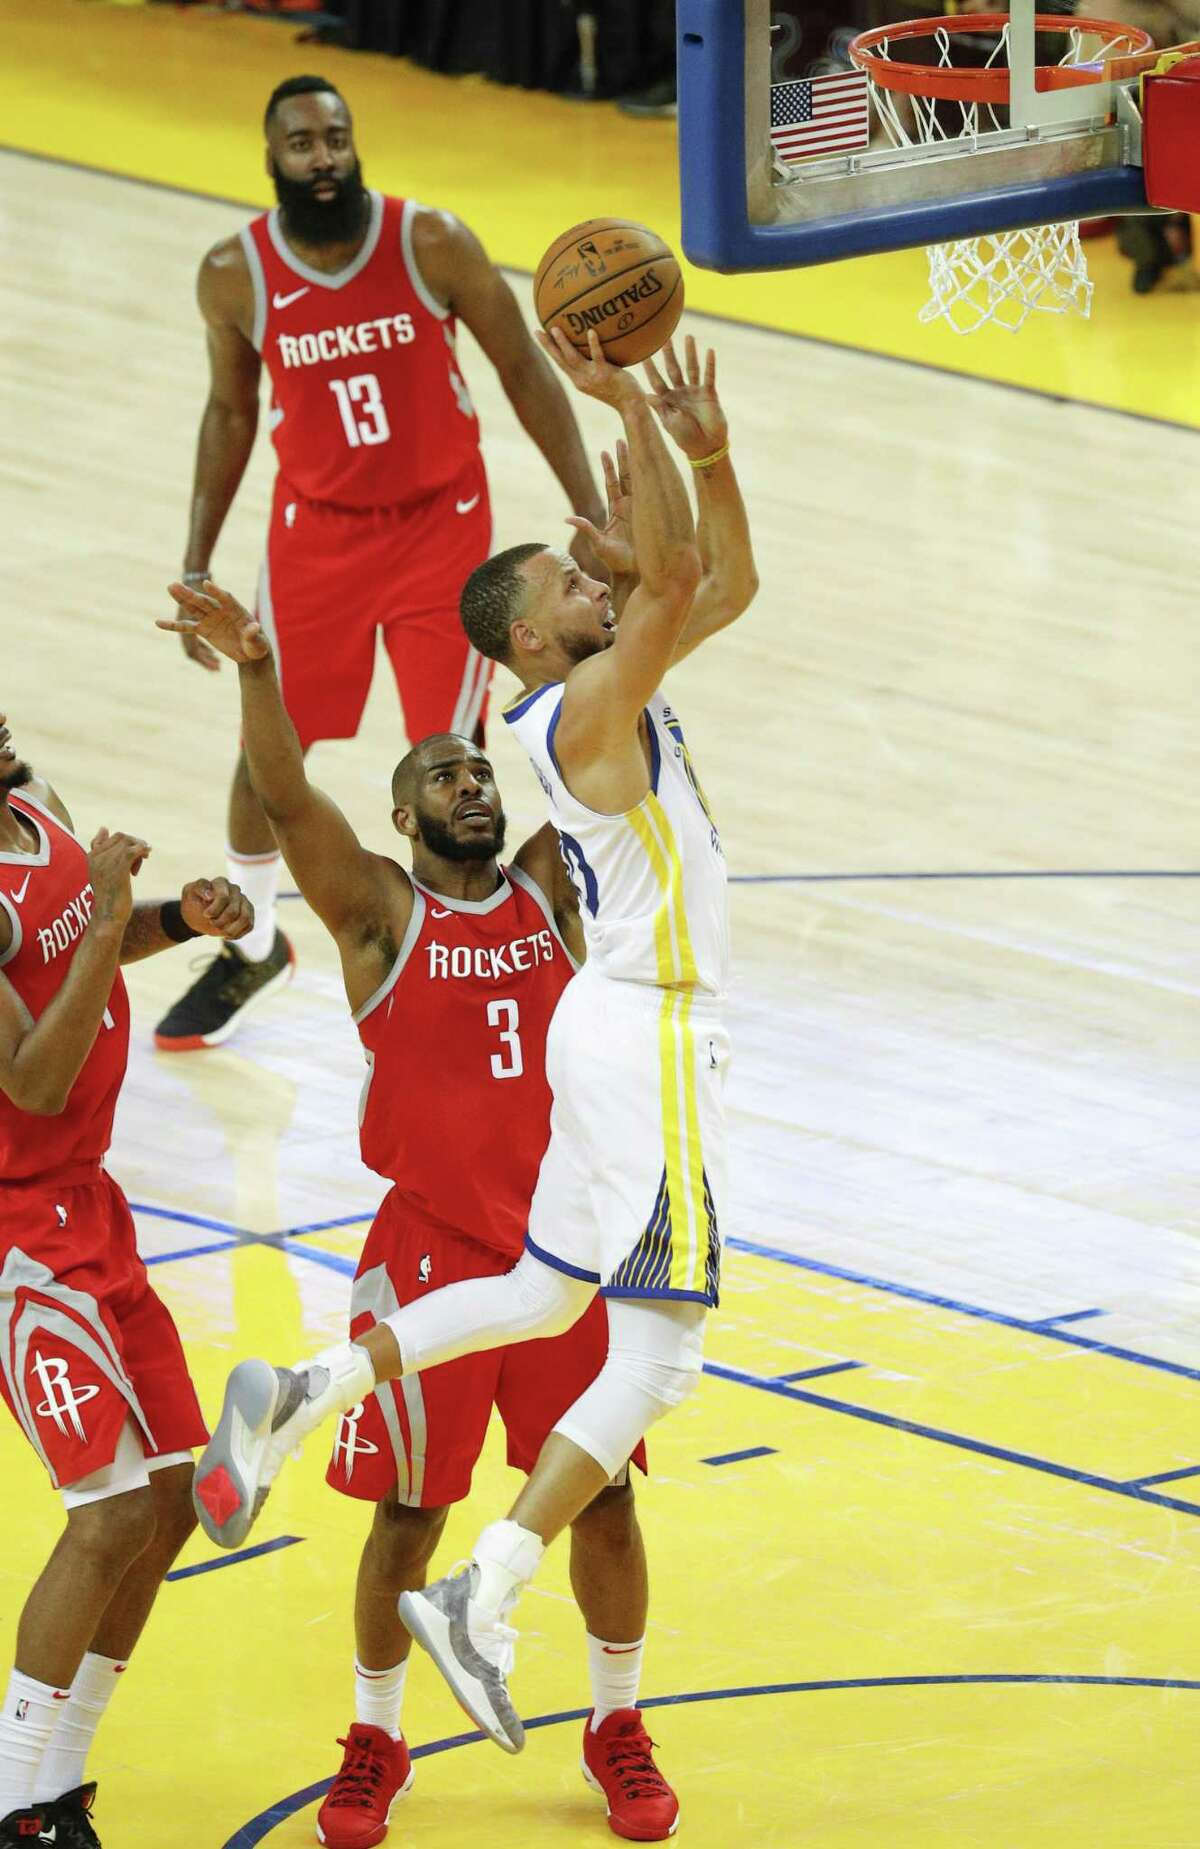 Golden State Warriors' Stephen Curry goes in for a layup over Houston Rockets' Chris Paul in the second quarter during game 3 of the Western Conference Finals between the Golden State Warriors and the Houston Rockets at Oracle Arena on Sunday, May 20, 2018 in Oakland, Calif.